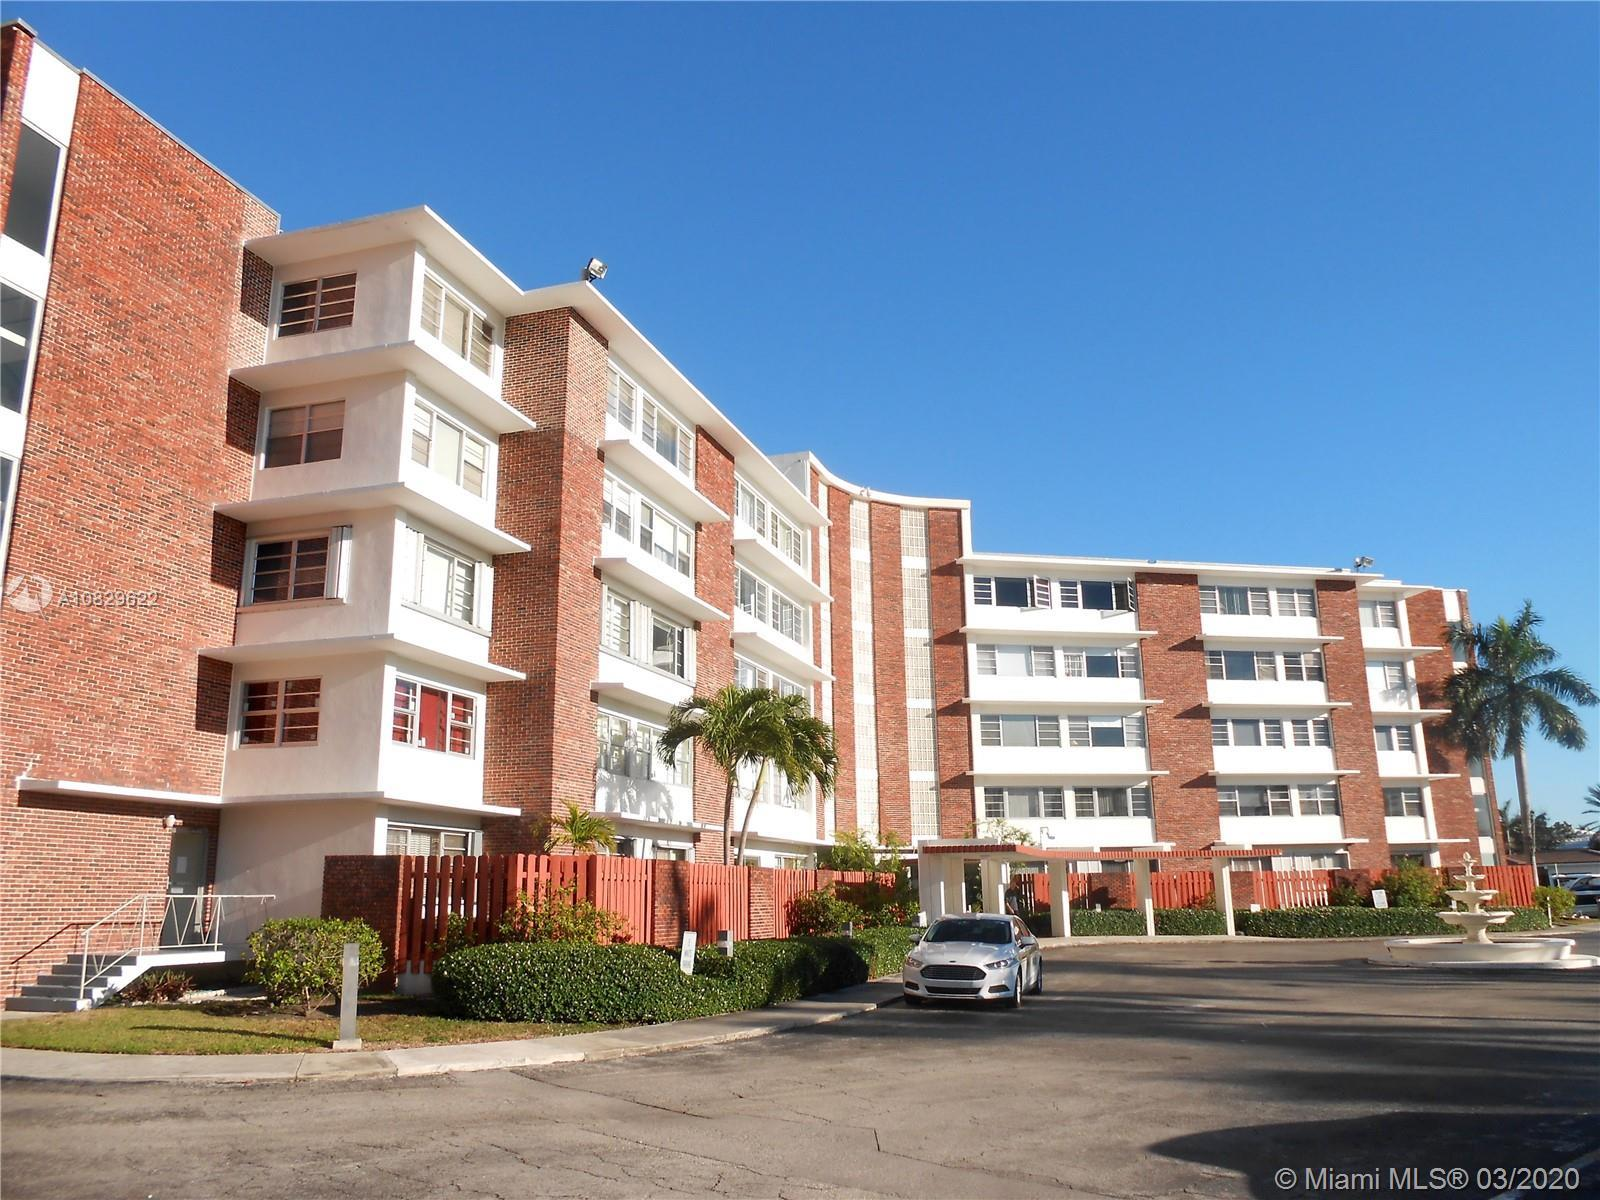 VERY SPACIOUS 2/2 CONDO IN BAY-FRONT BUILDING. MASTER SUITE HAS LARGE WALK-IN CLOSET. NEW PLANTATION